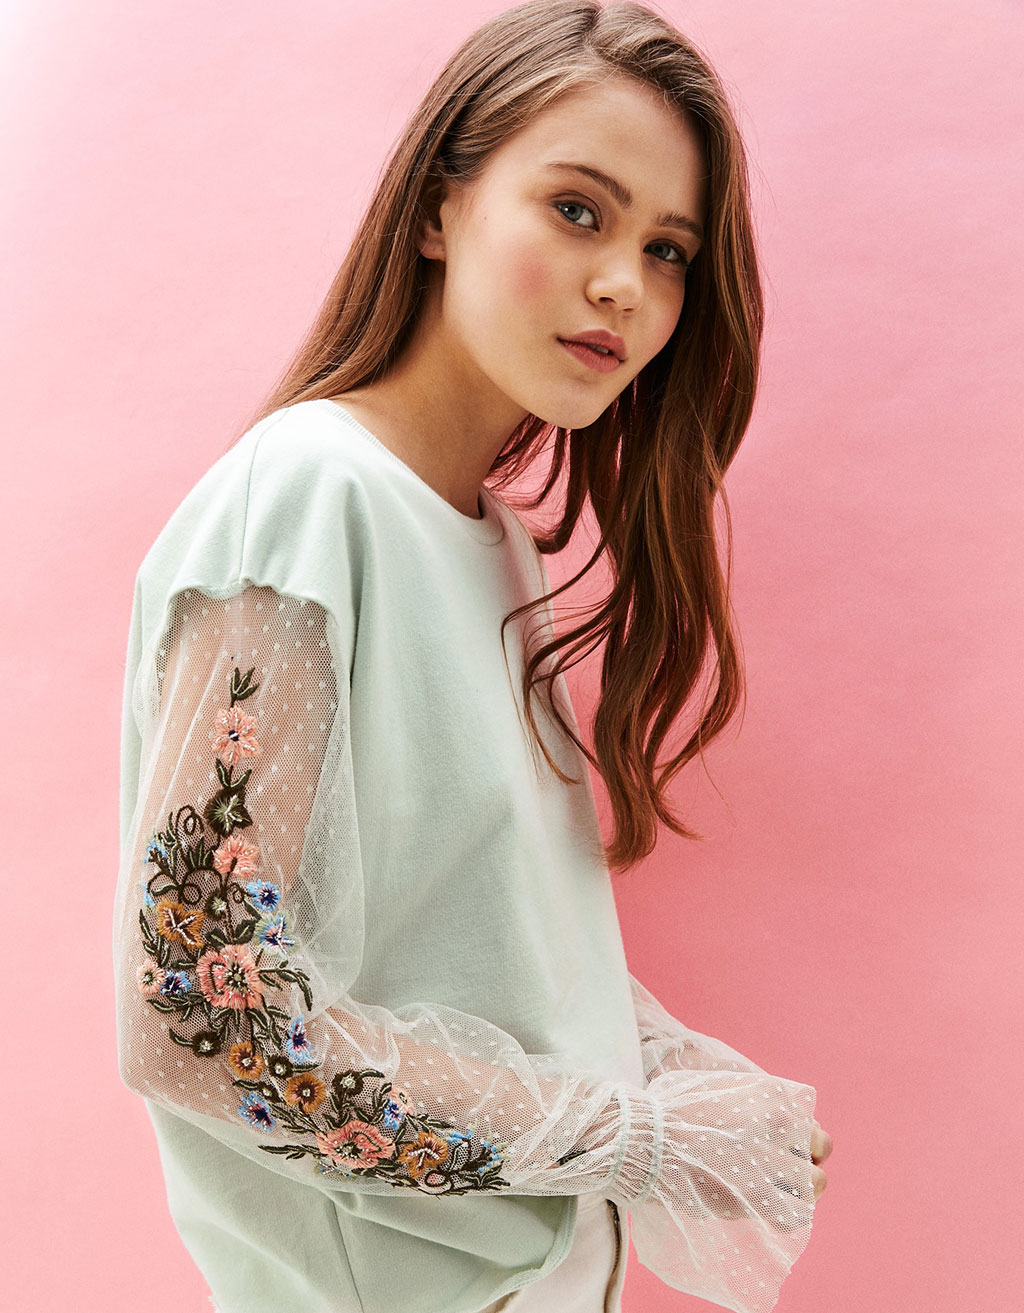 Sweatshirt with flowers embroidered on the sleeves